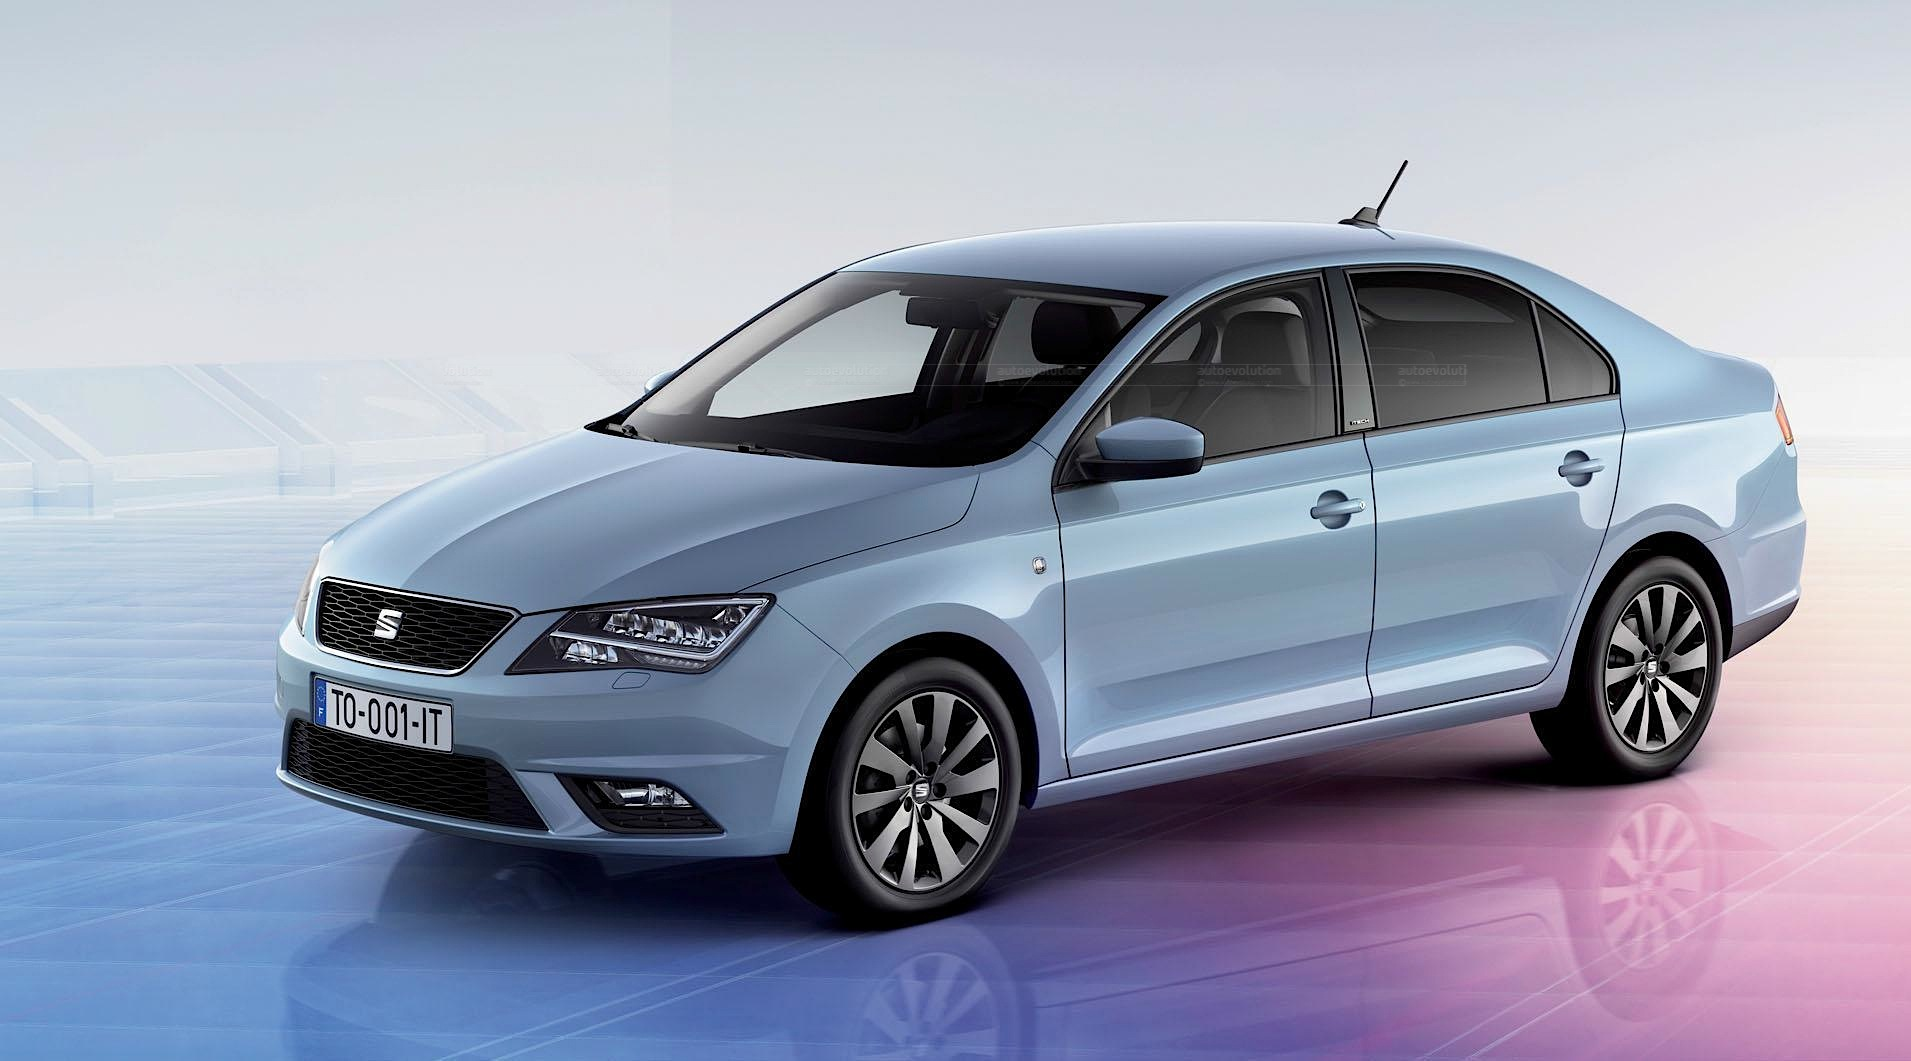 2015 seat toledo receives led headlights autoevolution. Black Bedroom Furniture Sets. Home Design Ideas